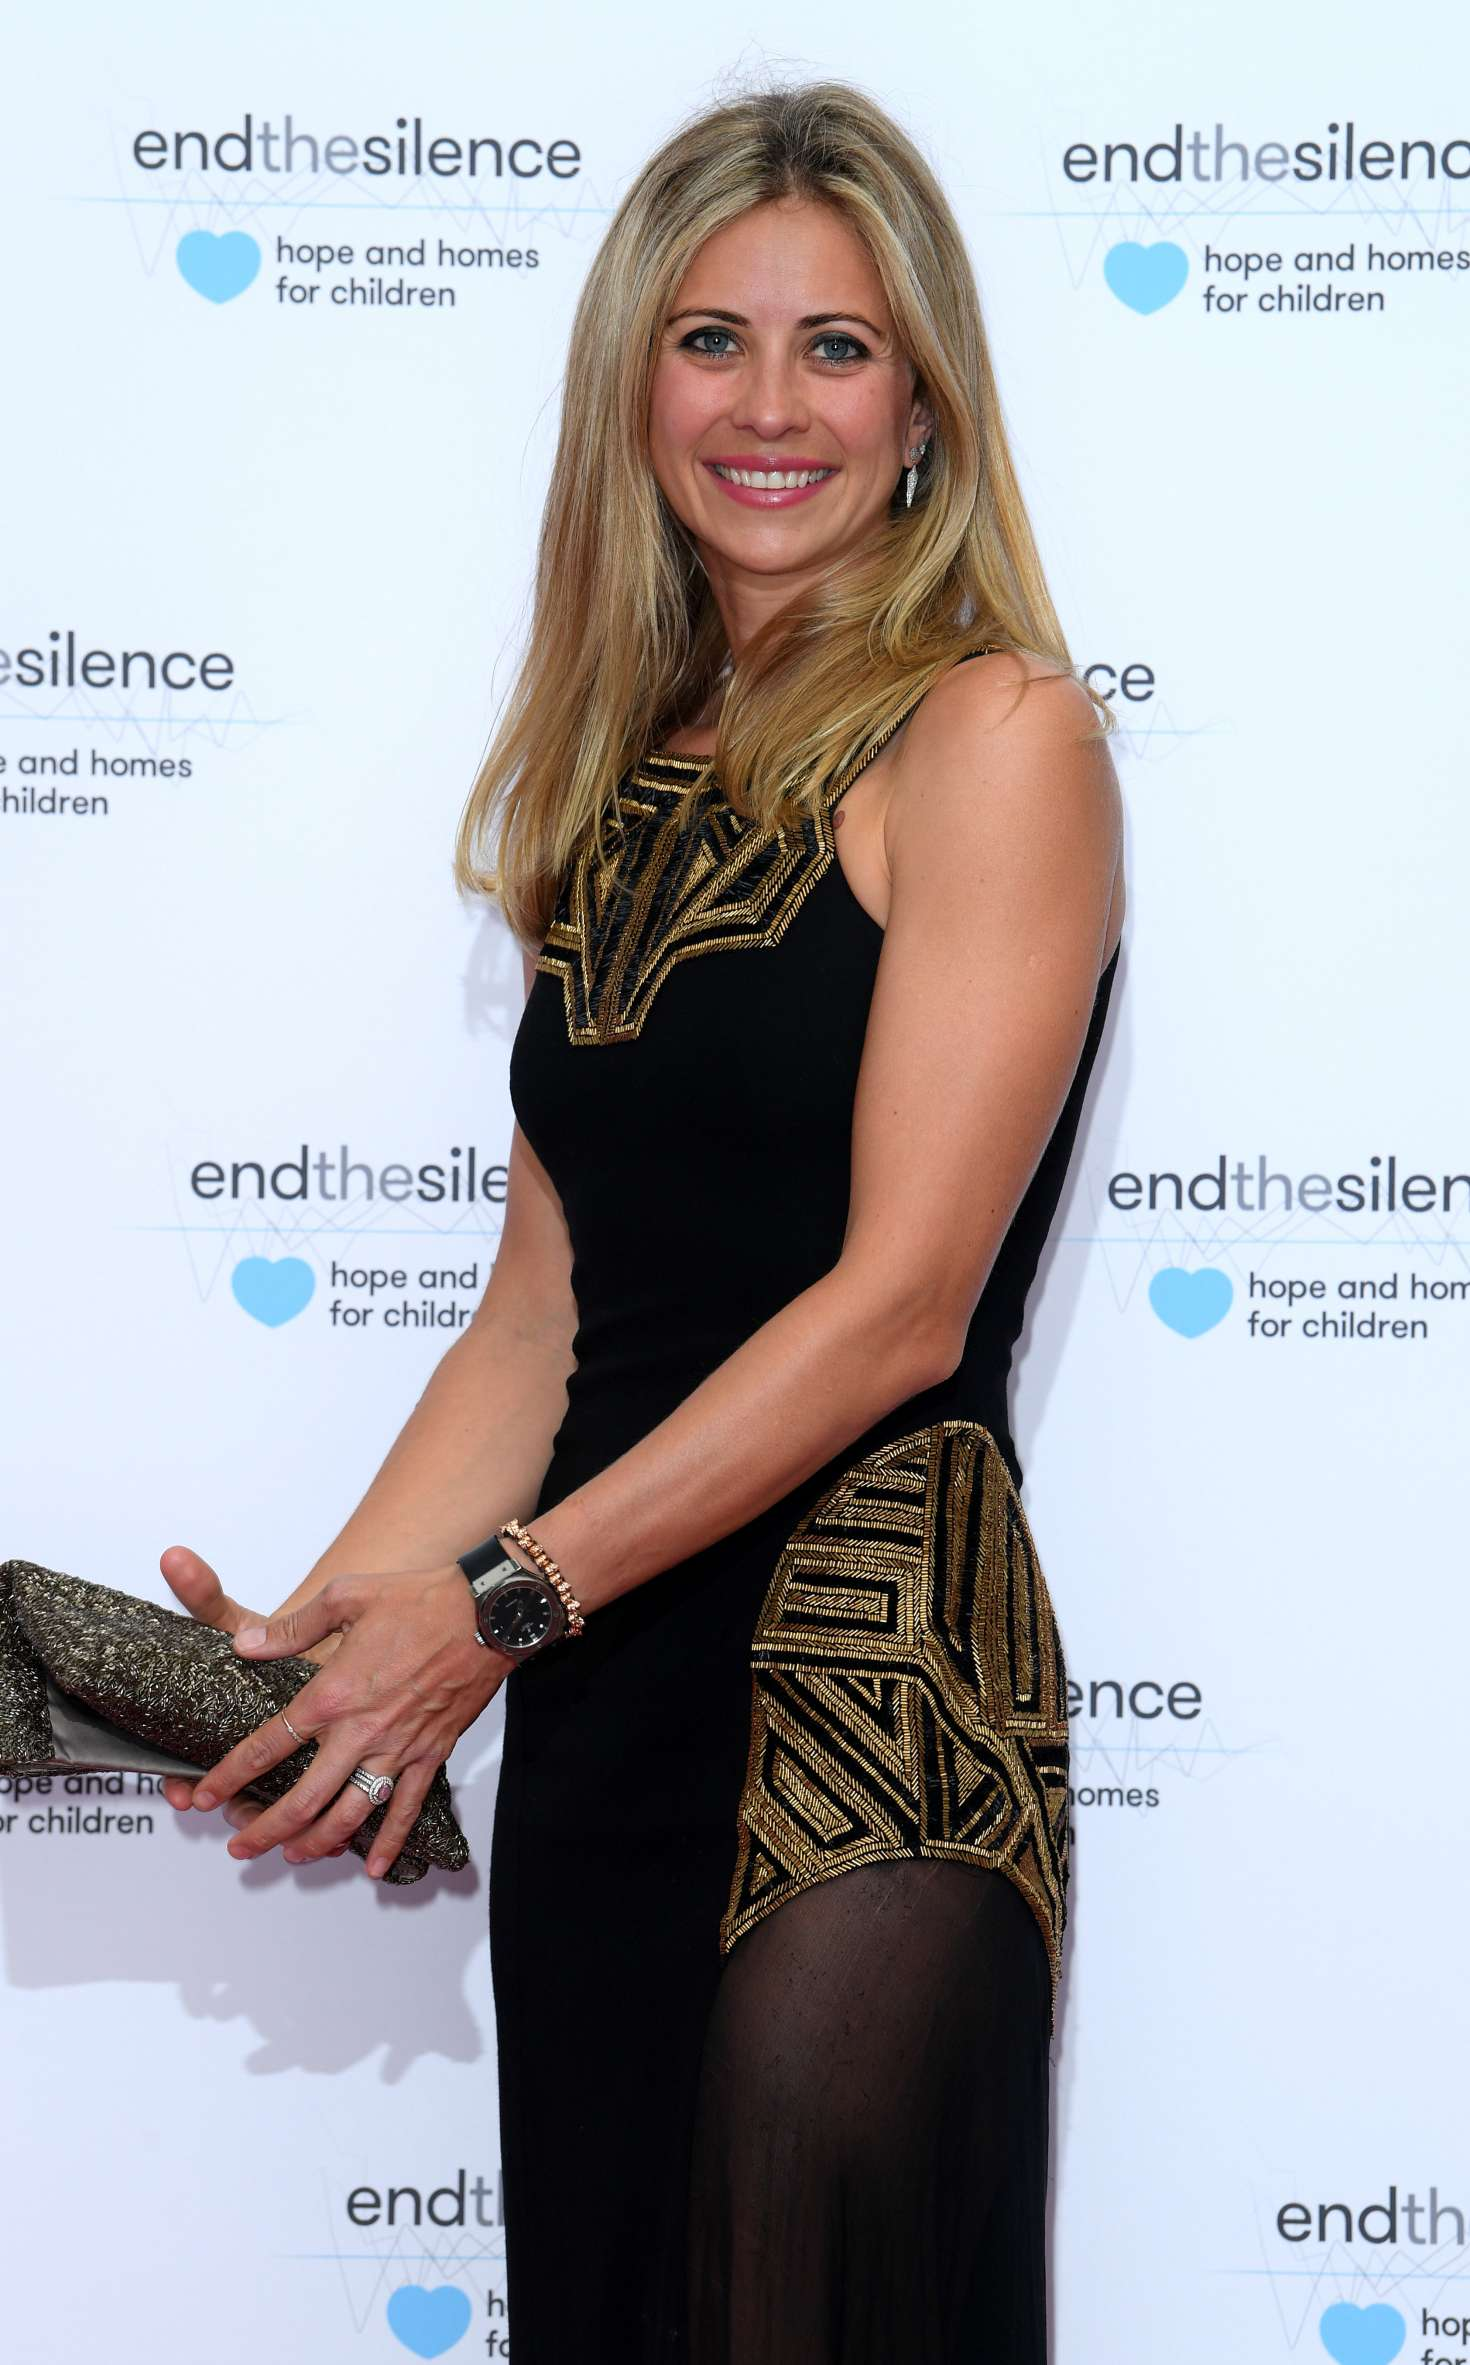 Watch Geri halliwell end the silence charity fundraiser in london uk video